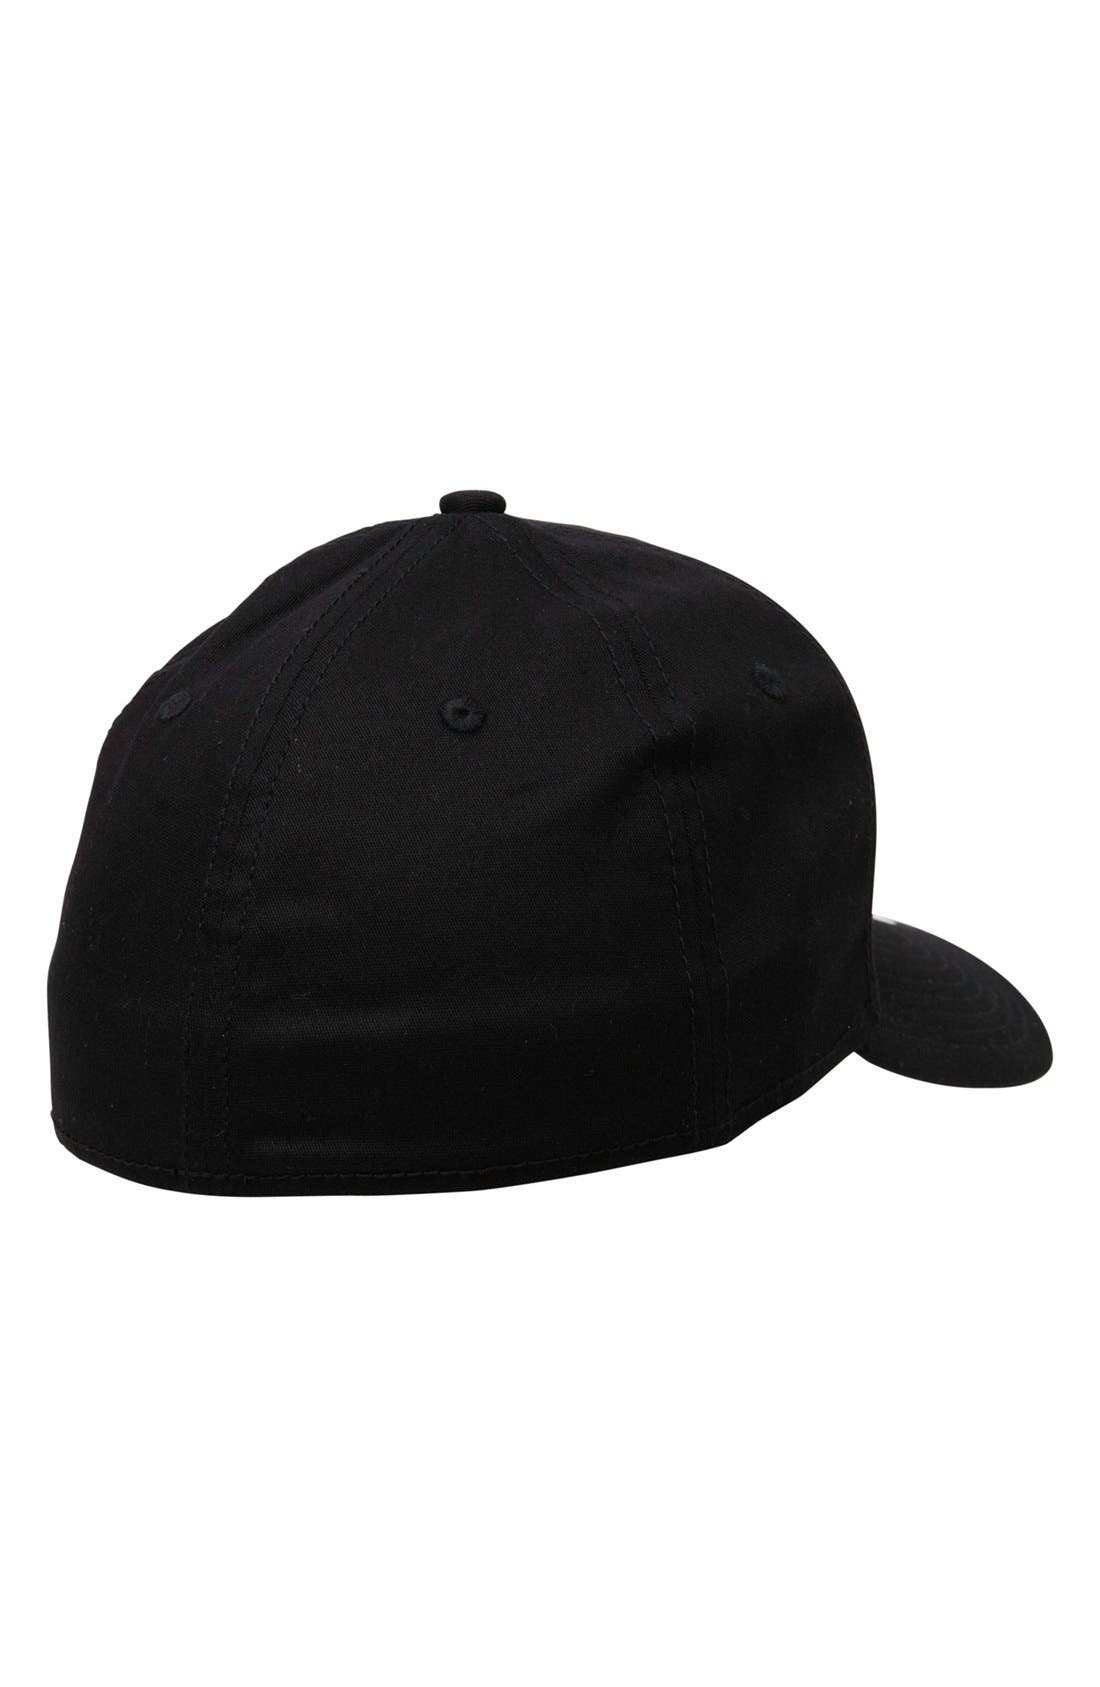 'Ruckis' Fitted Hat,                             Alternate thumbnail 3, color,                             001